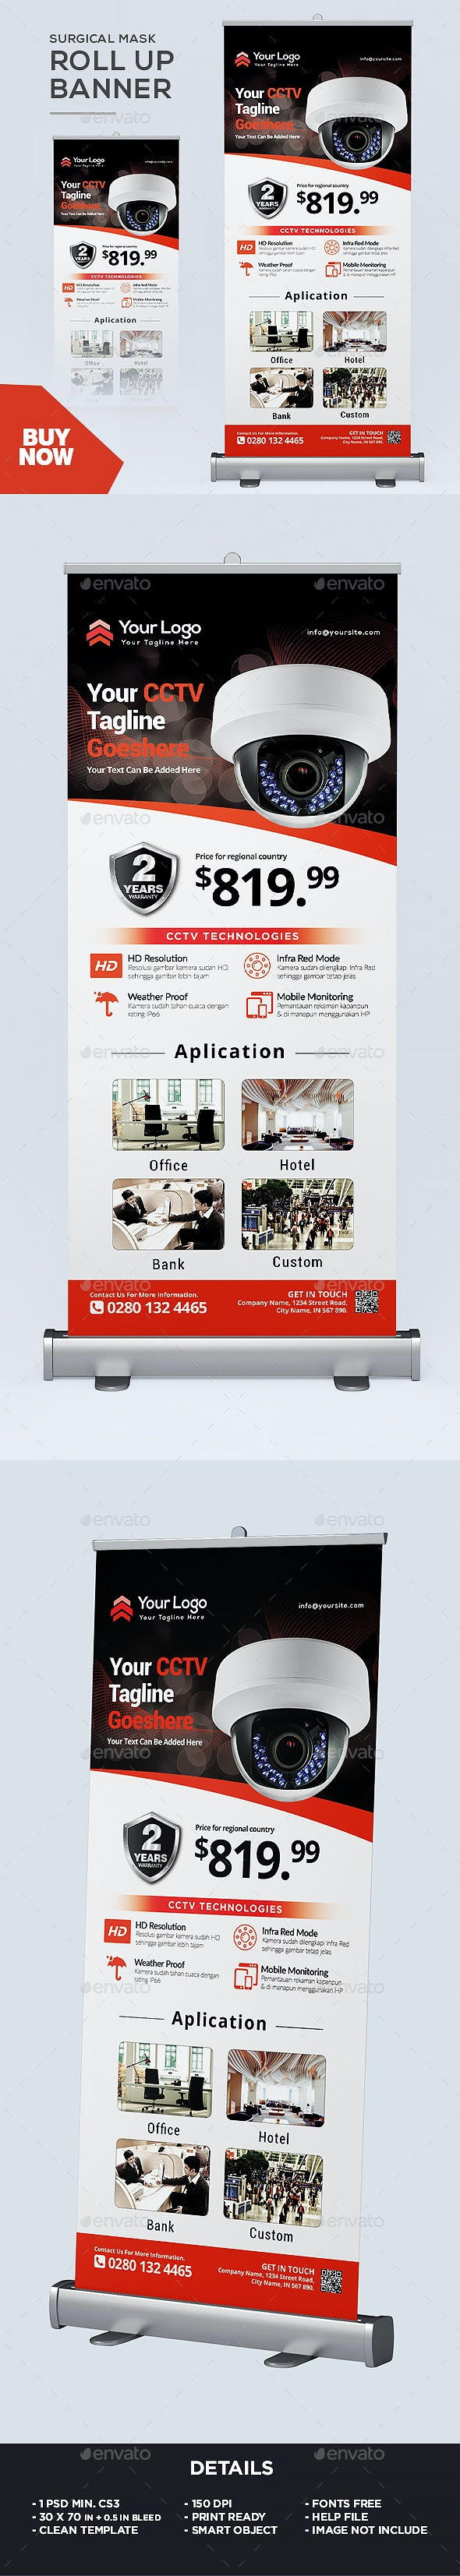 Roll Up Banner - CCTV Product - Signage Print Templates